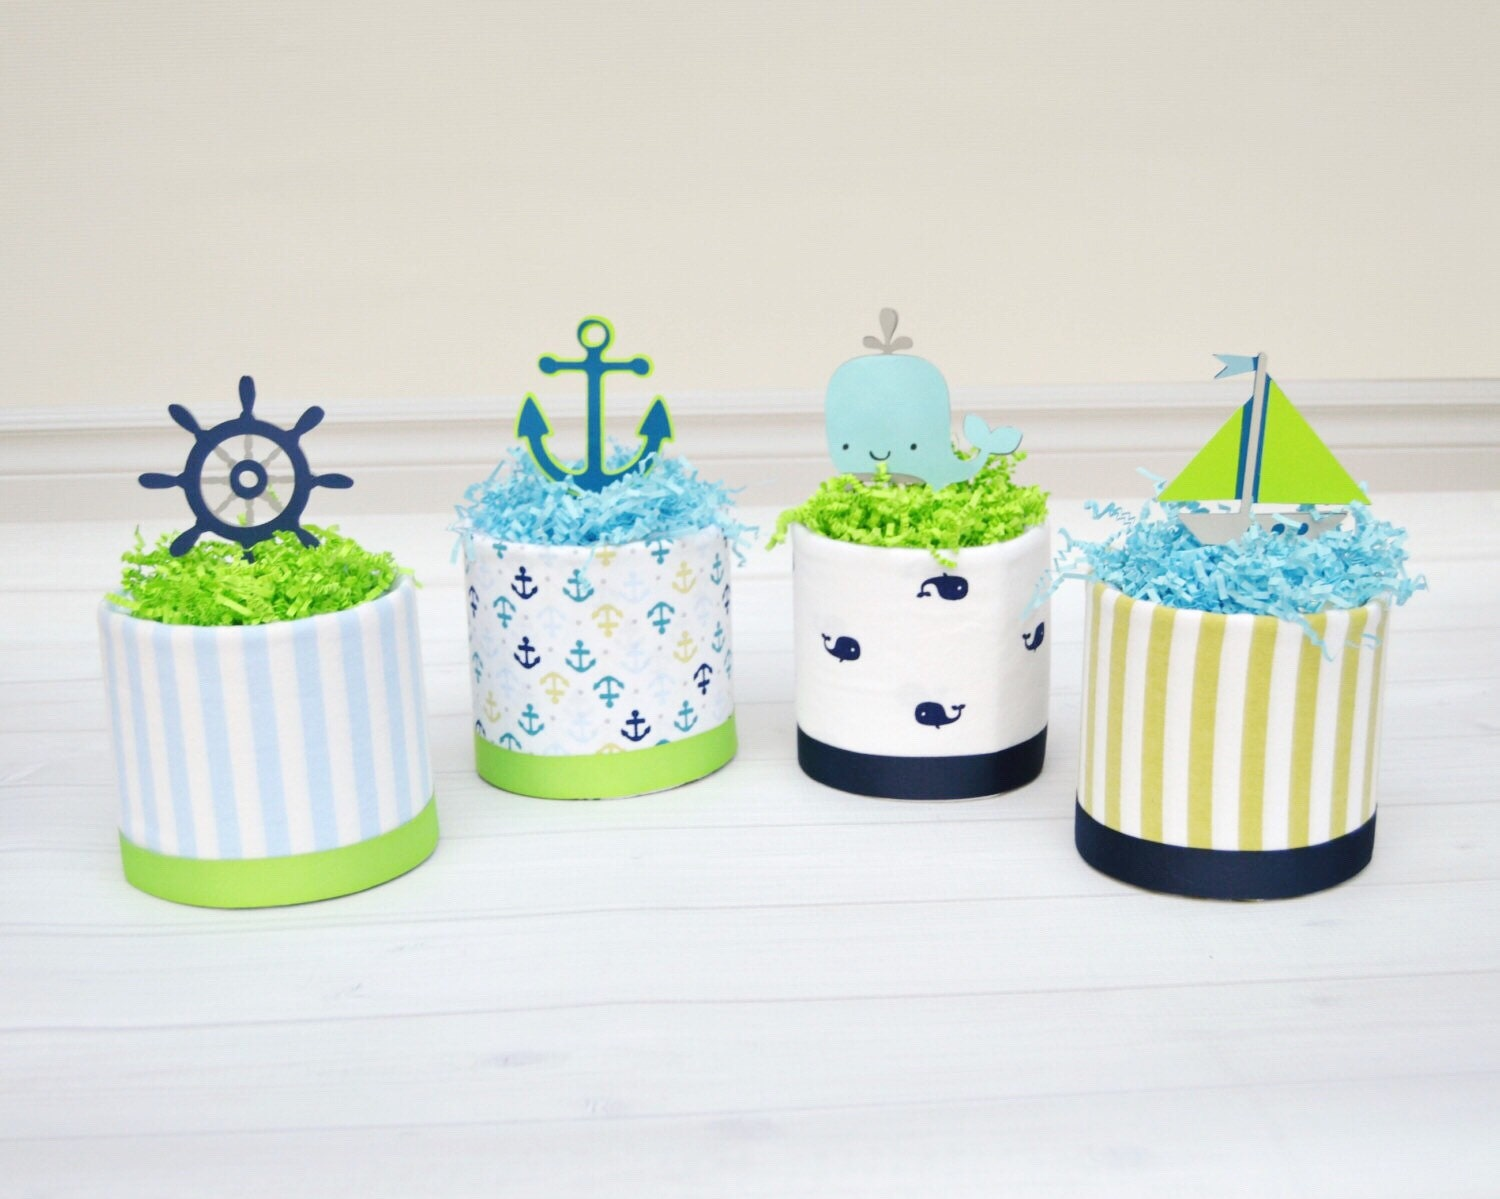 Nautical Baby Shower, Whale Baby Shower Centerpieces, Nautical Diaper Cake  Decorations, Whale Diaper Cakes, Nautical Table Decor